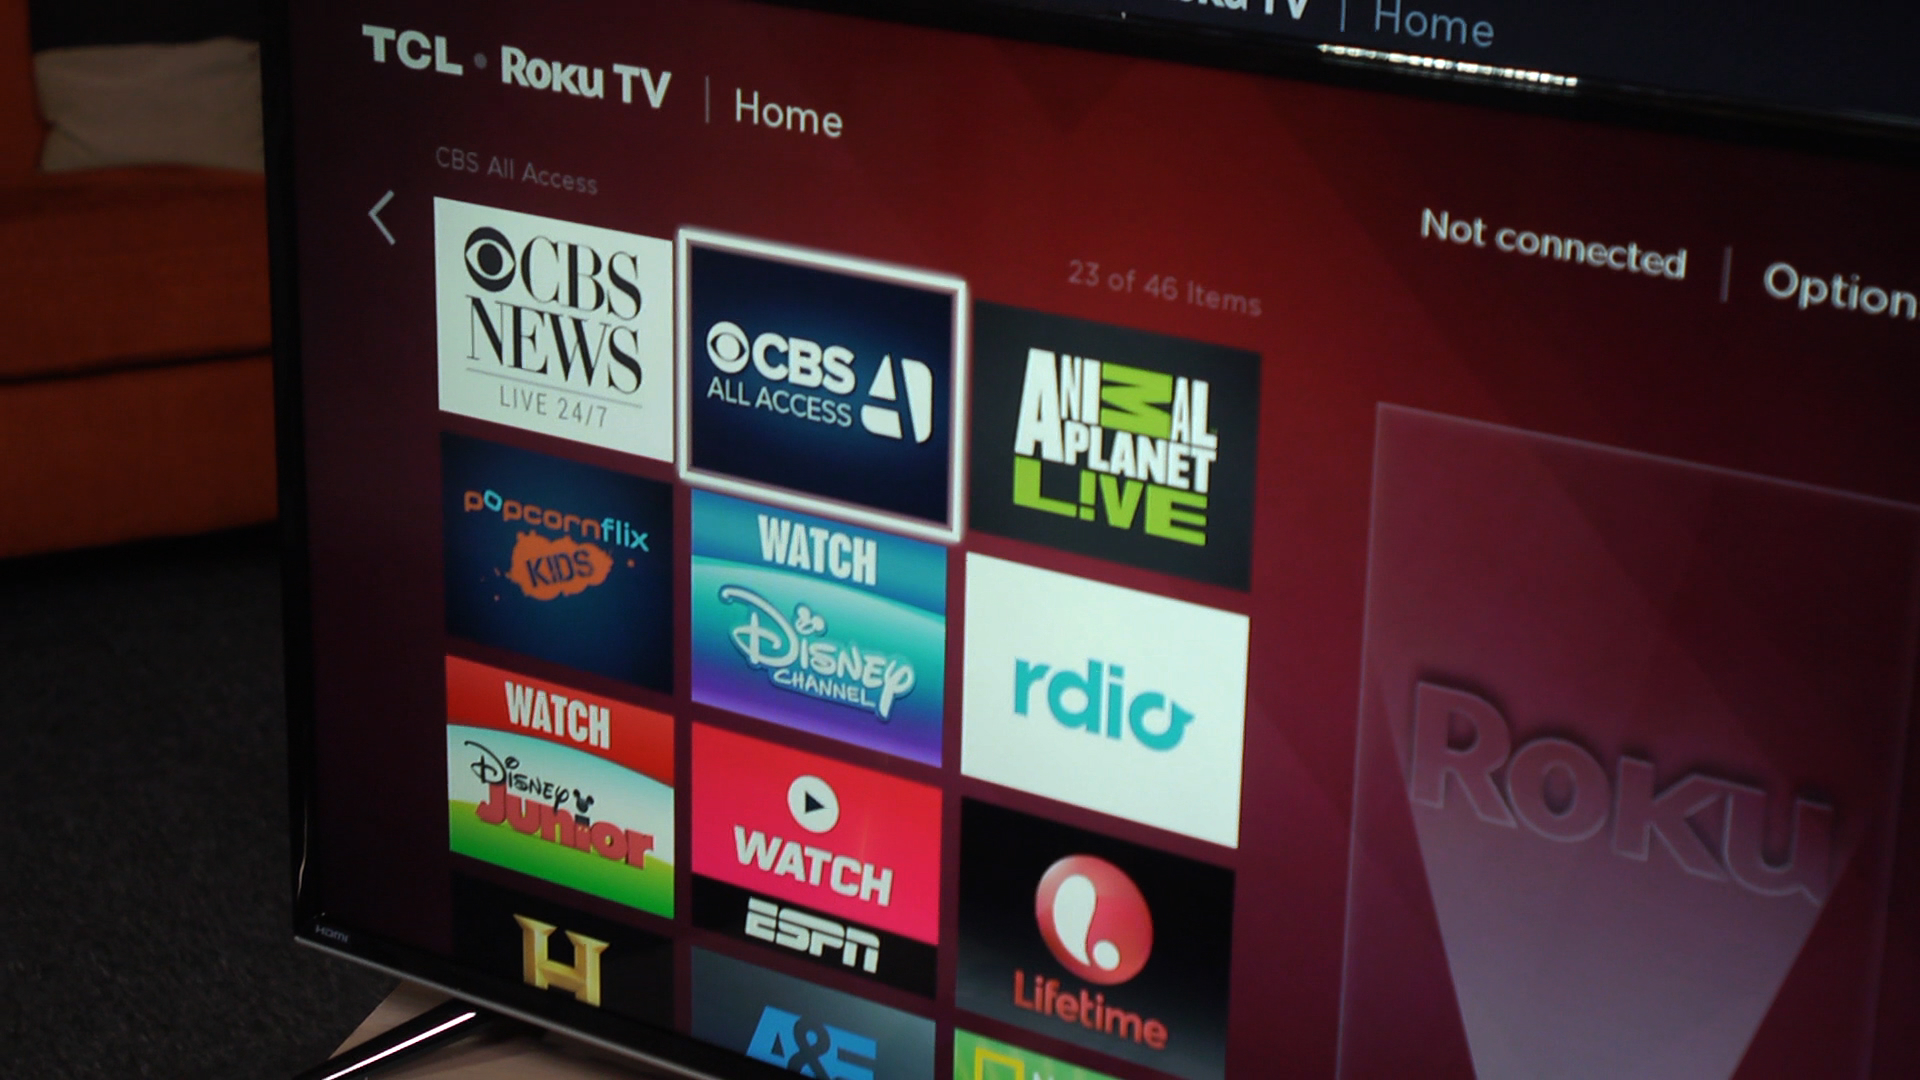 Video: Roku TV 2015: The best smart TV meets the lowest price